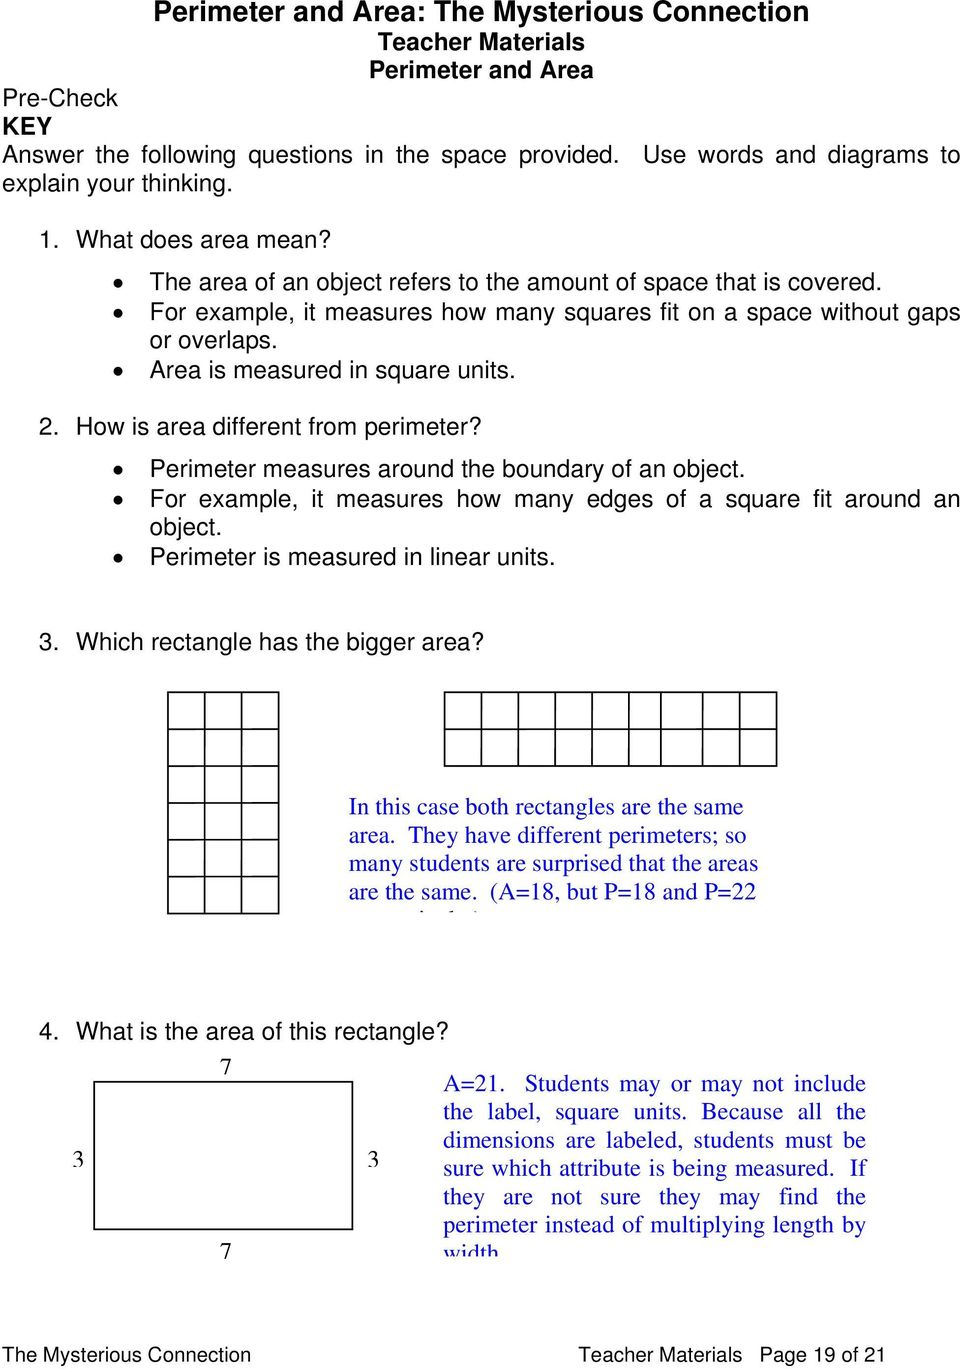 Area is measured in square. 2. How is area different from perimeter? Perimeter measures around the boundary of an object. For example, it measures how many edges of a square fit around an object.